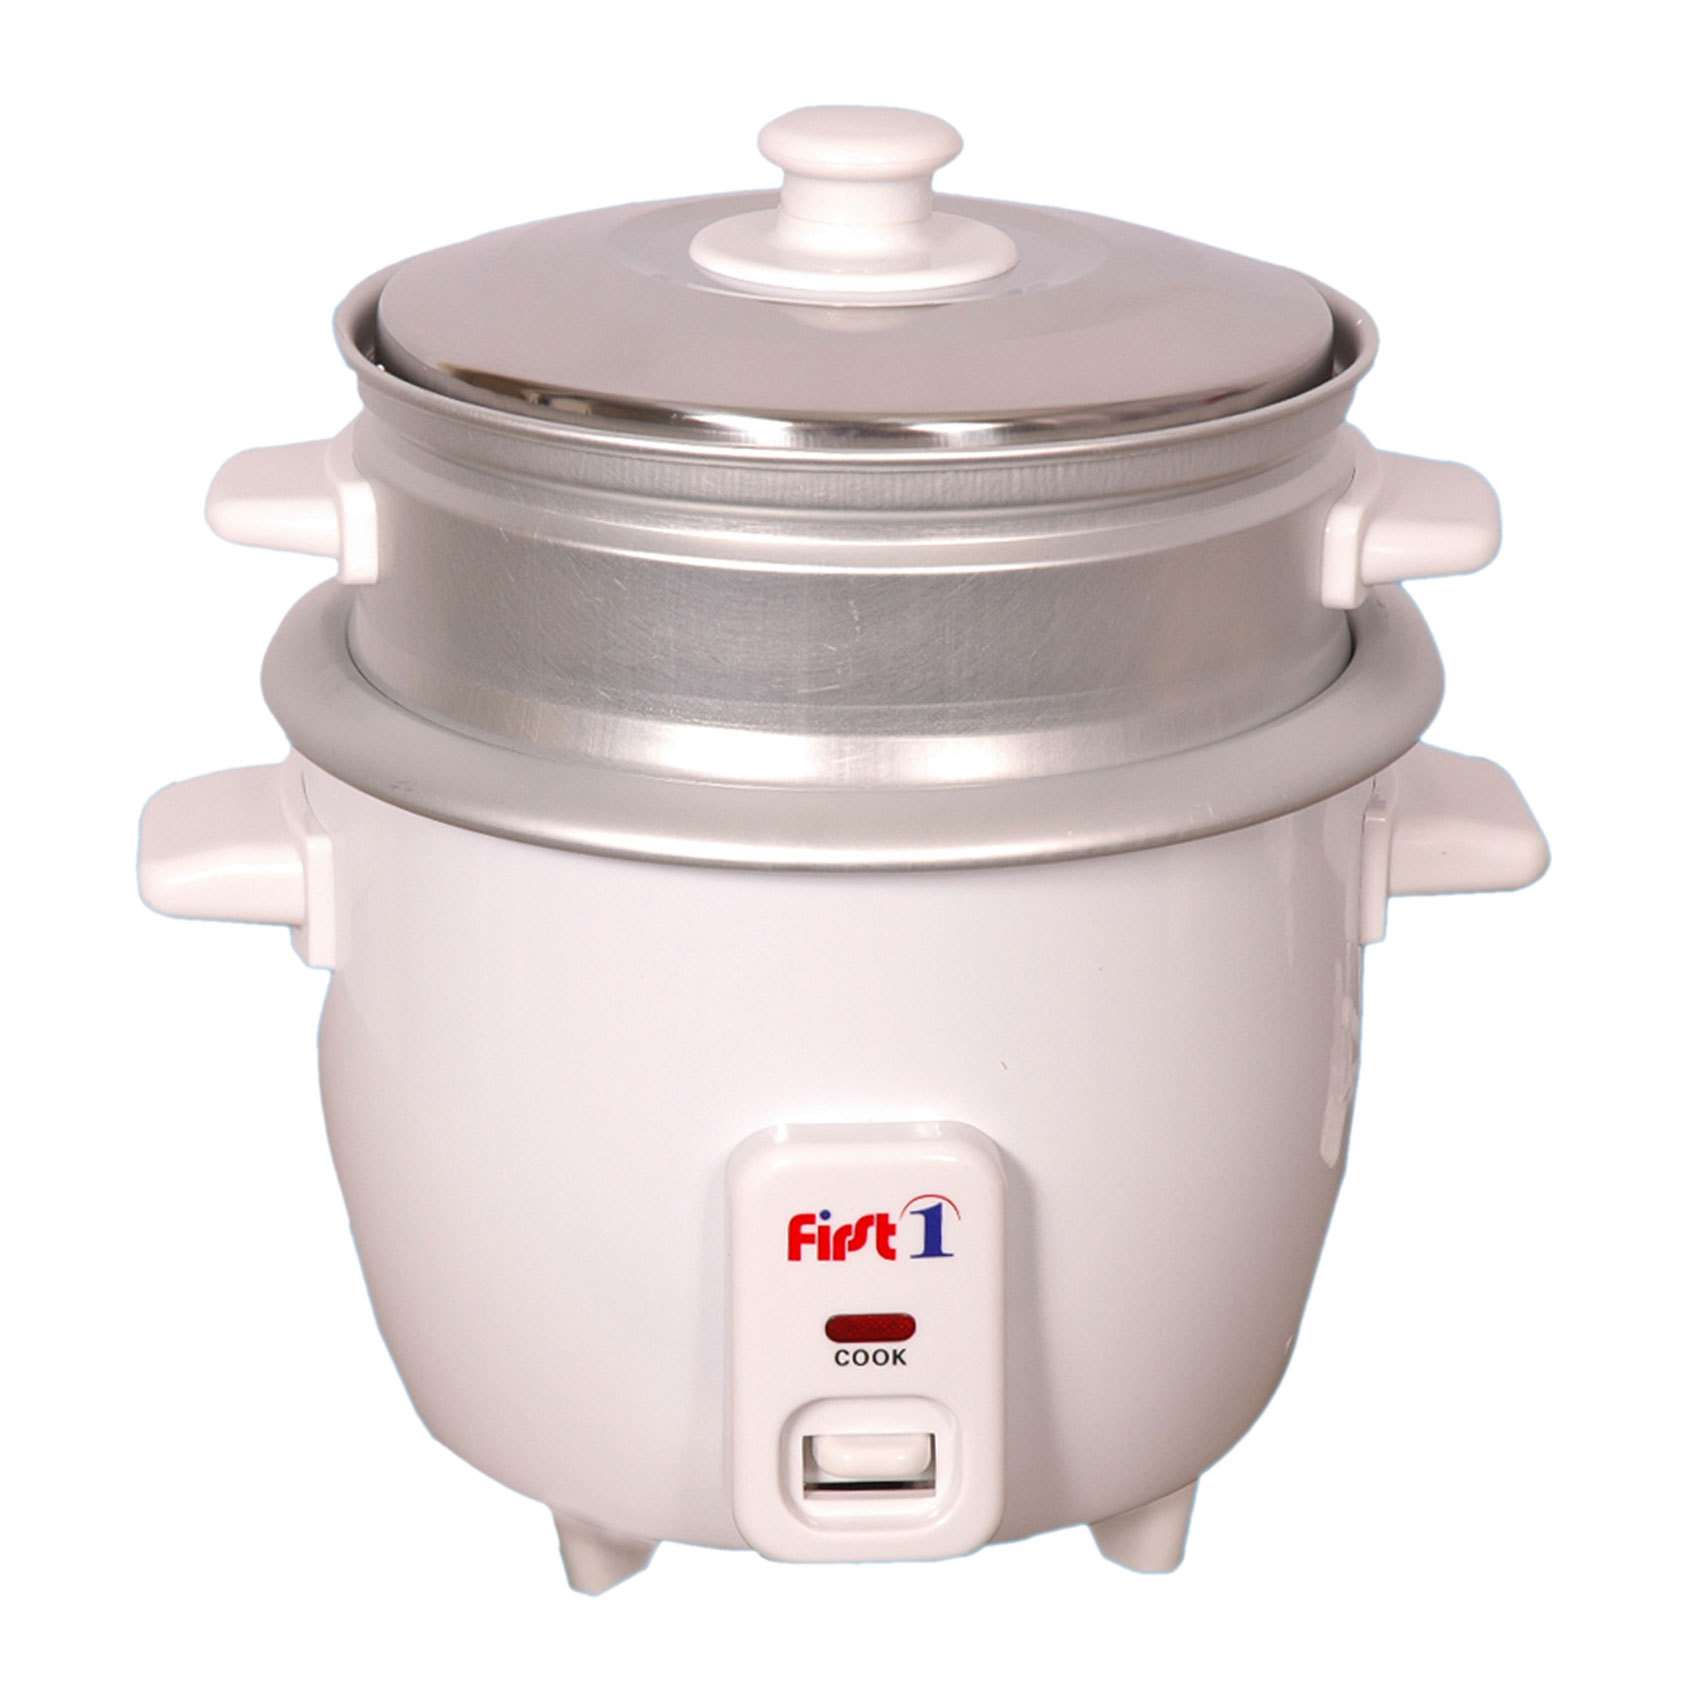 FIRST1 RICE COOKER F-06RC